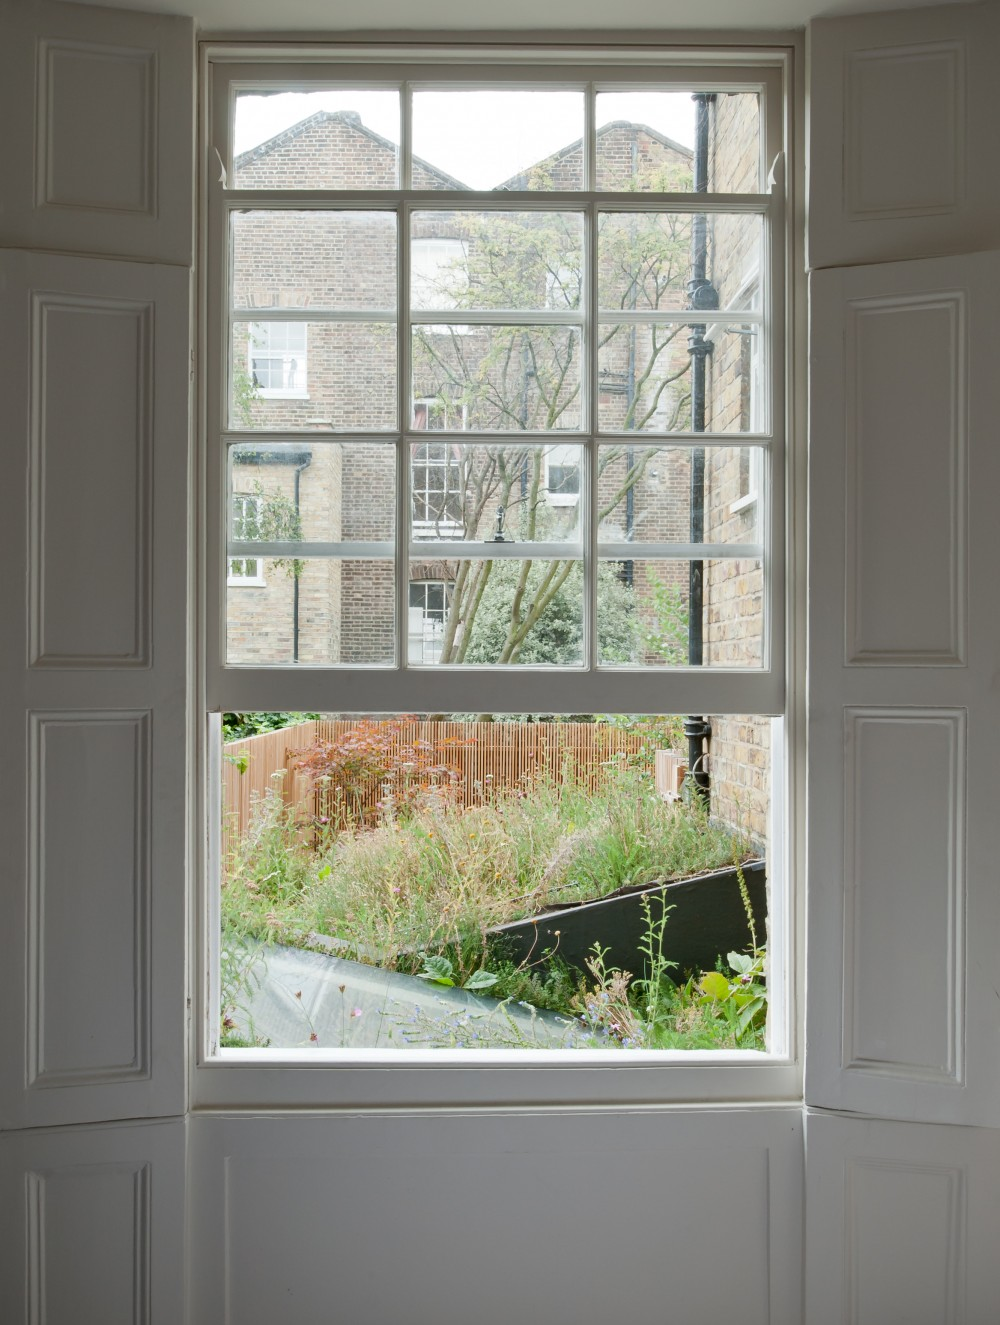 The-jewel-box-0009-Rear-bedroom-window-1000x1325.jpg